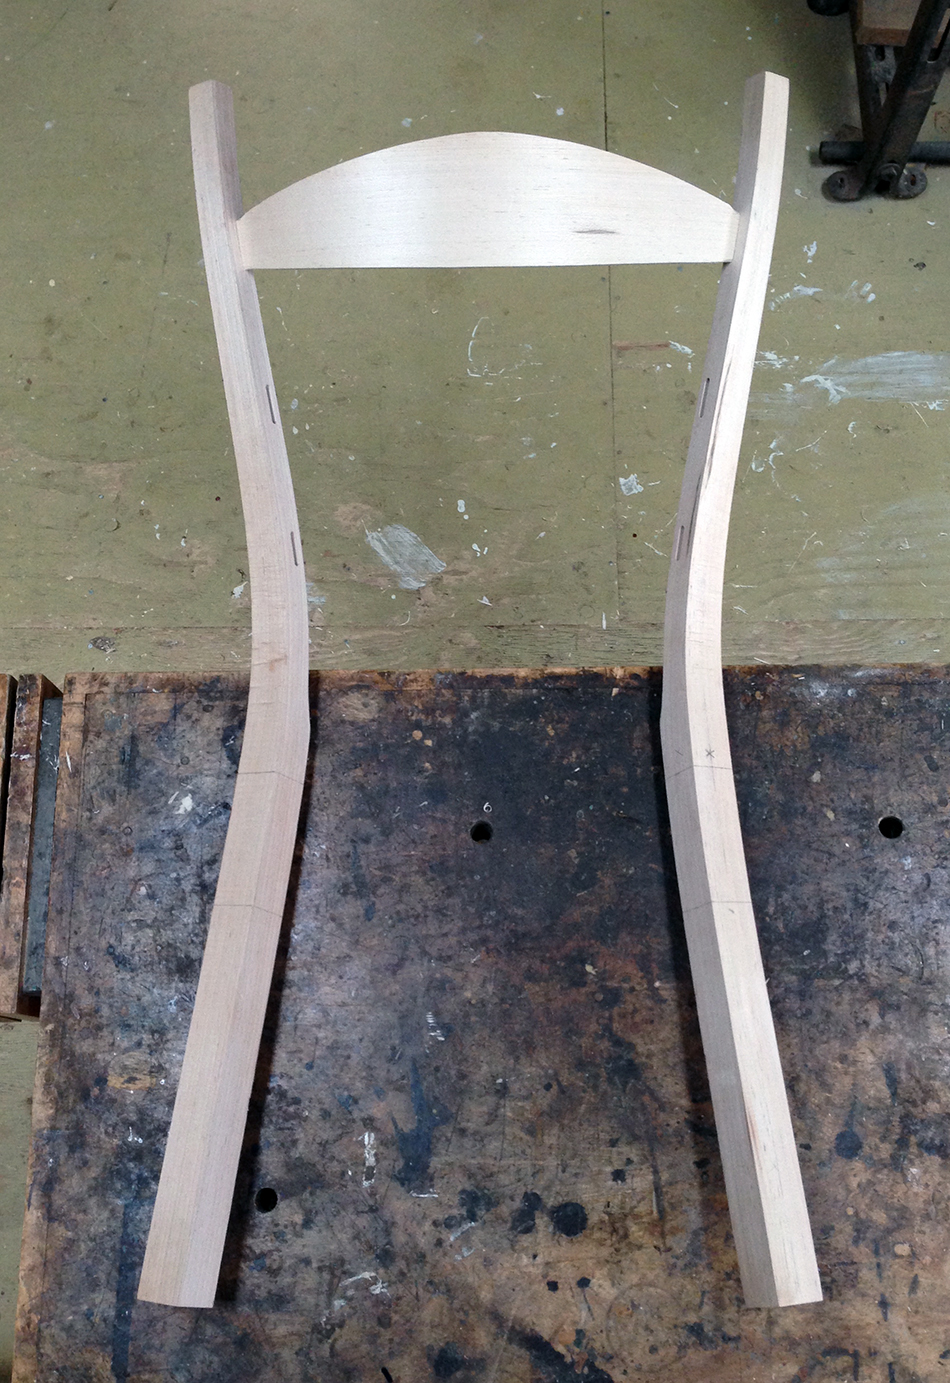 Fitting Slats: The rear legs and top slat dry-assembled